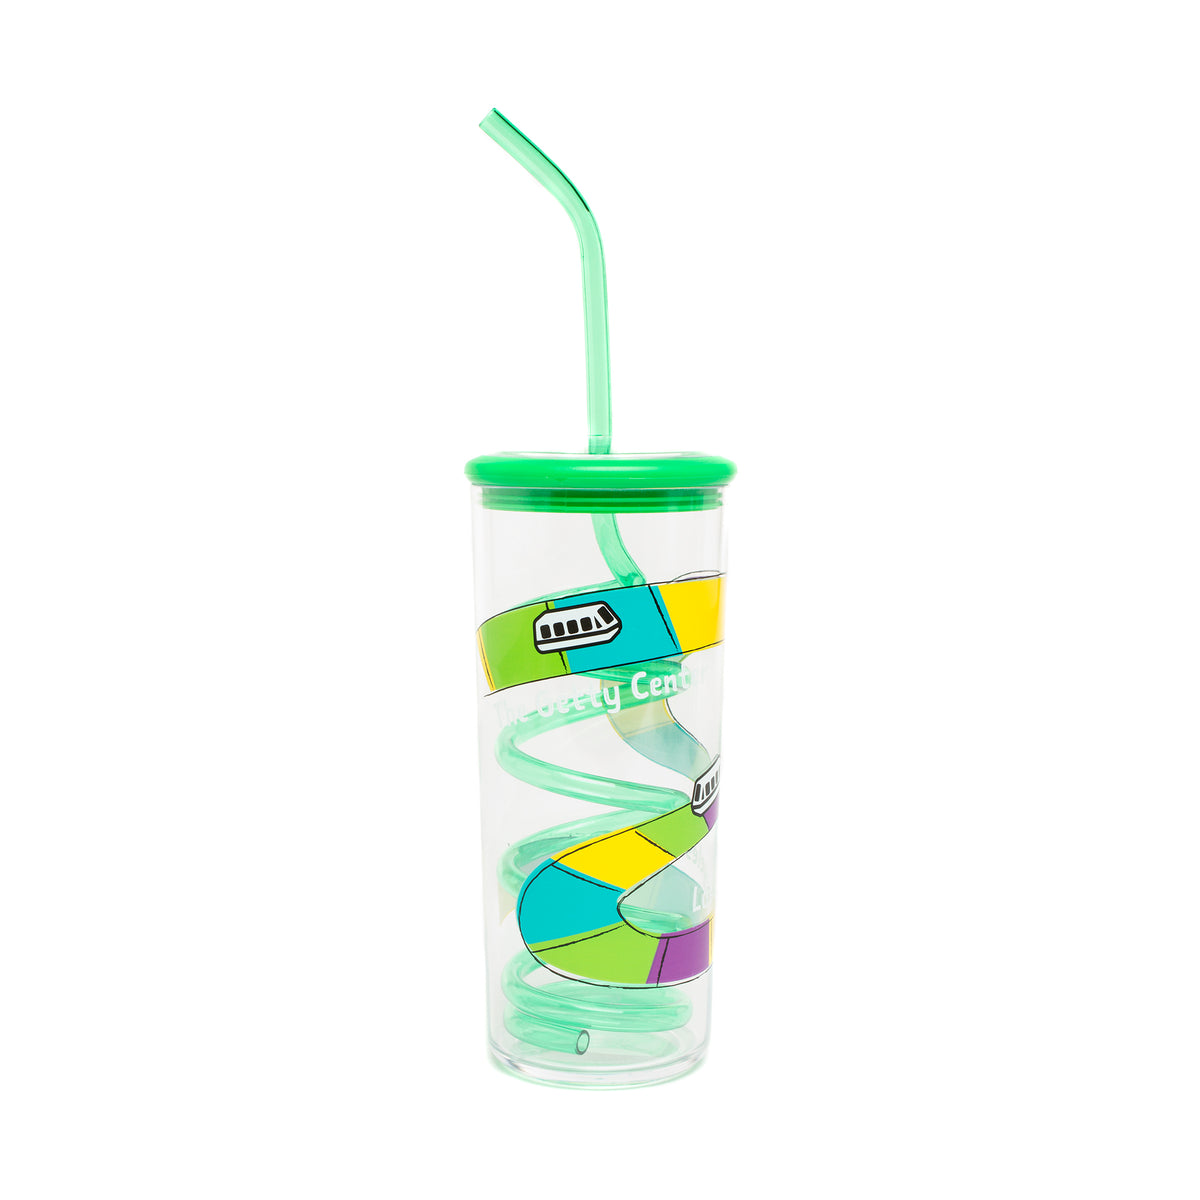 Getty Tram Silly Straw Cup-Green | Getty Store